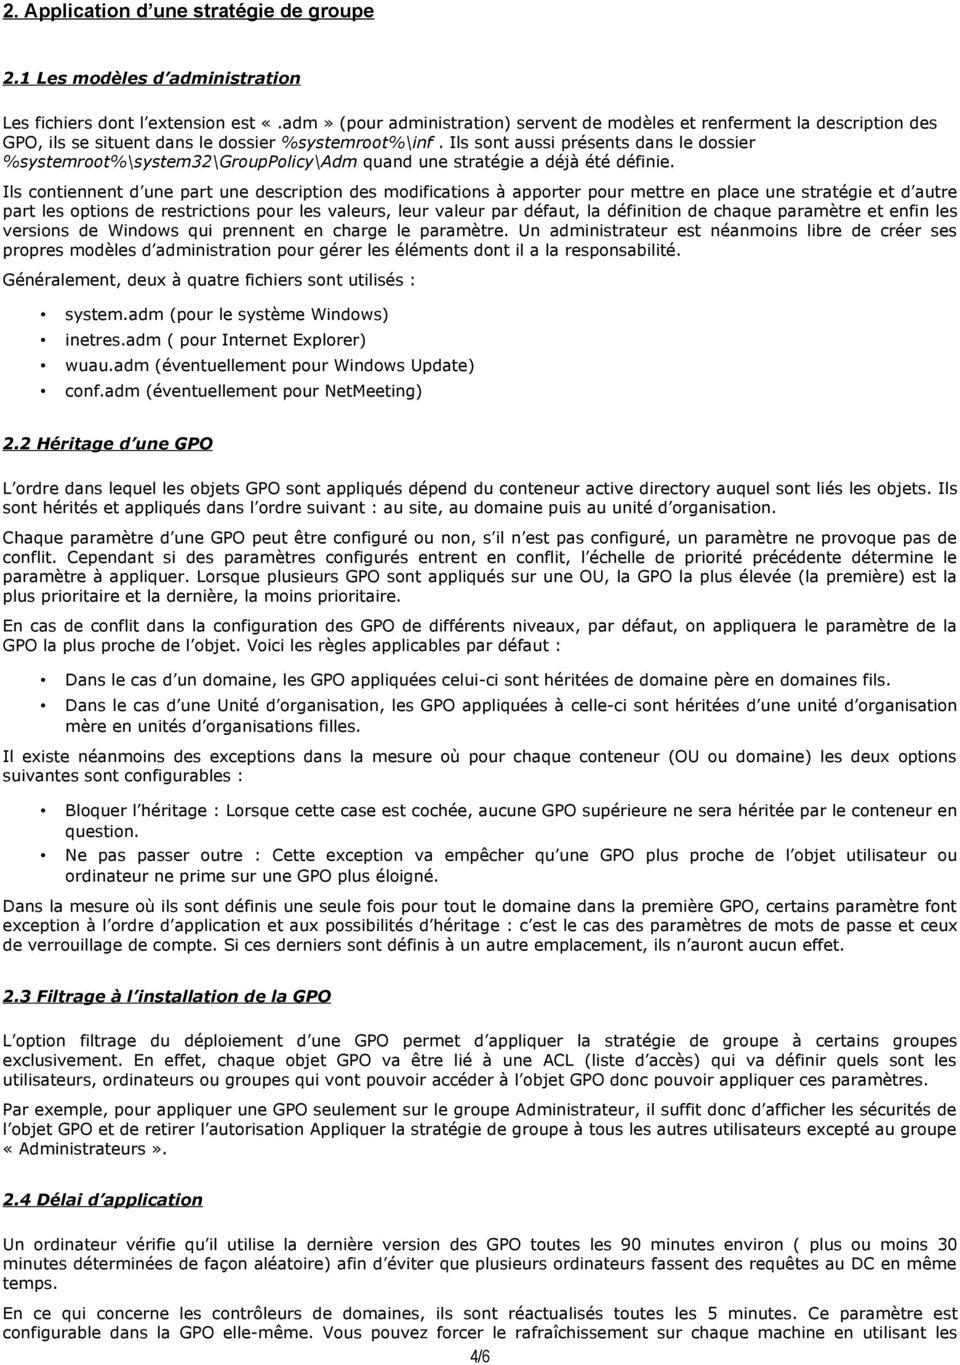 strategie de groupe gpo pdf